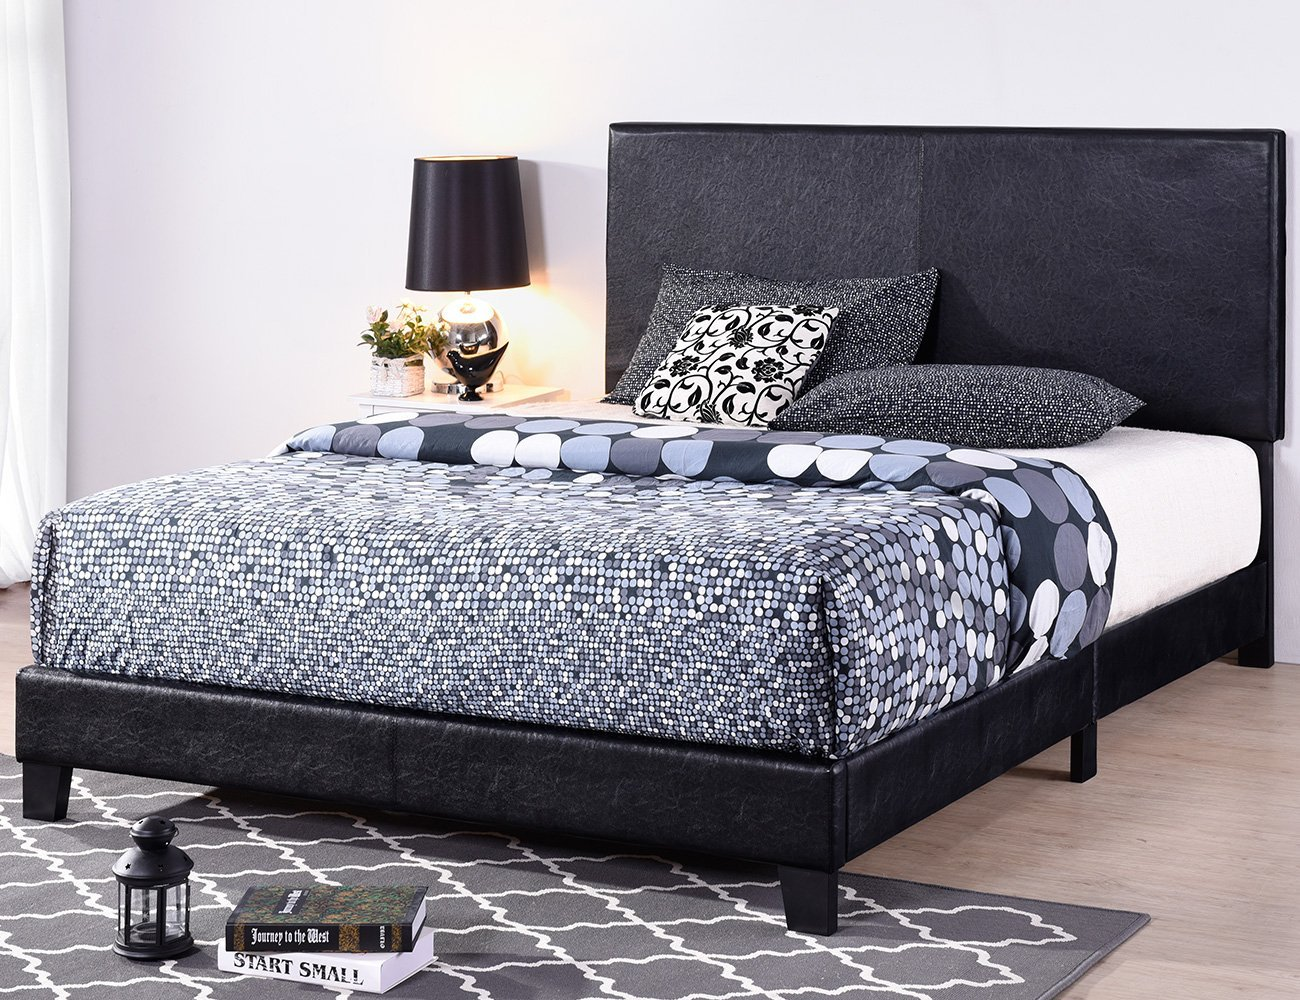 Exceptionnel Harperu0026Bright Designs Vienna Faux Leather Upholstered Platform Bed With  Wooden Slats (Full)